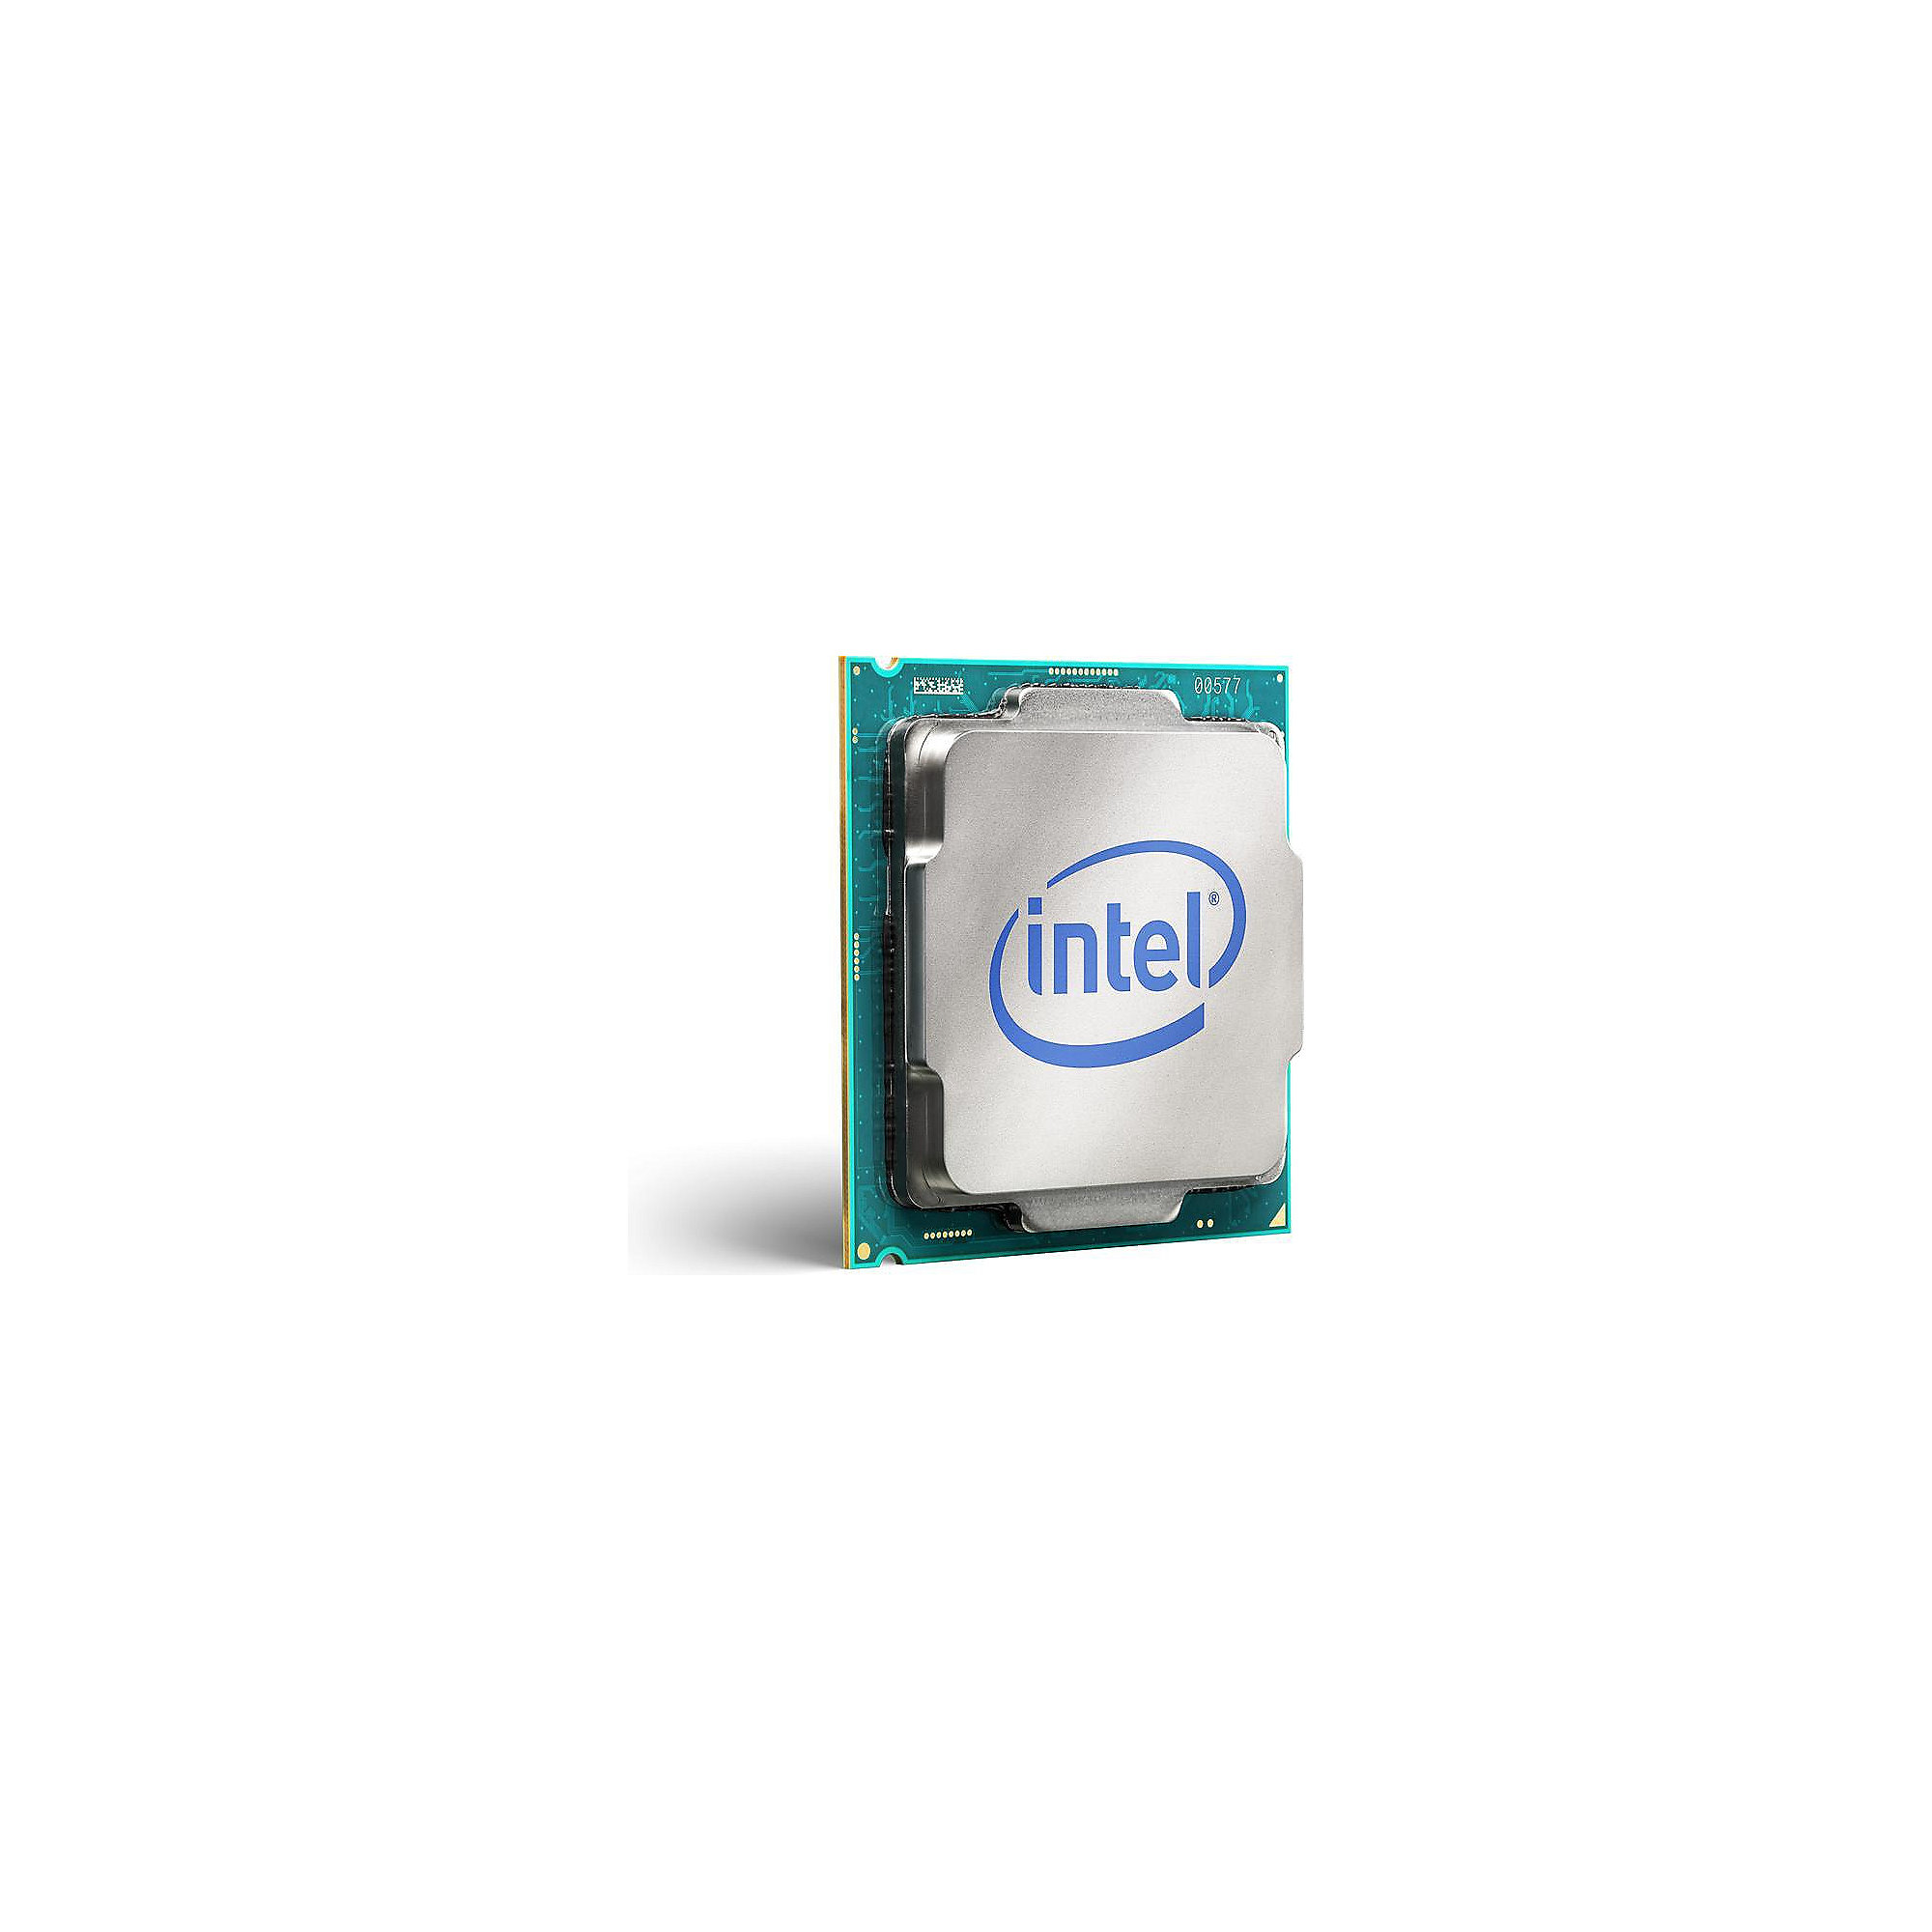 Intel Core i5-7400 4x 3,0 GHz 8MB-L3 Turbo/HT/IntelHD Sockel 1151 (Kabylake)